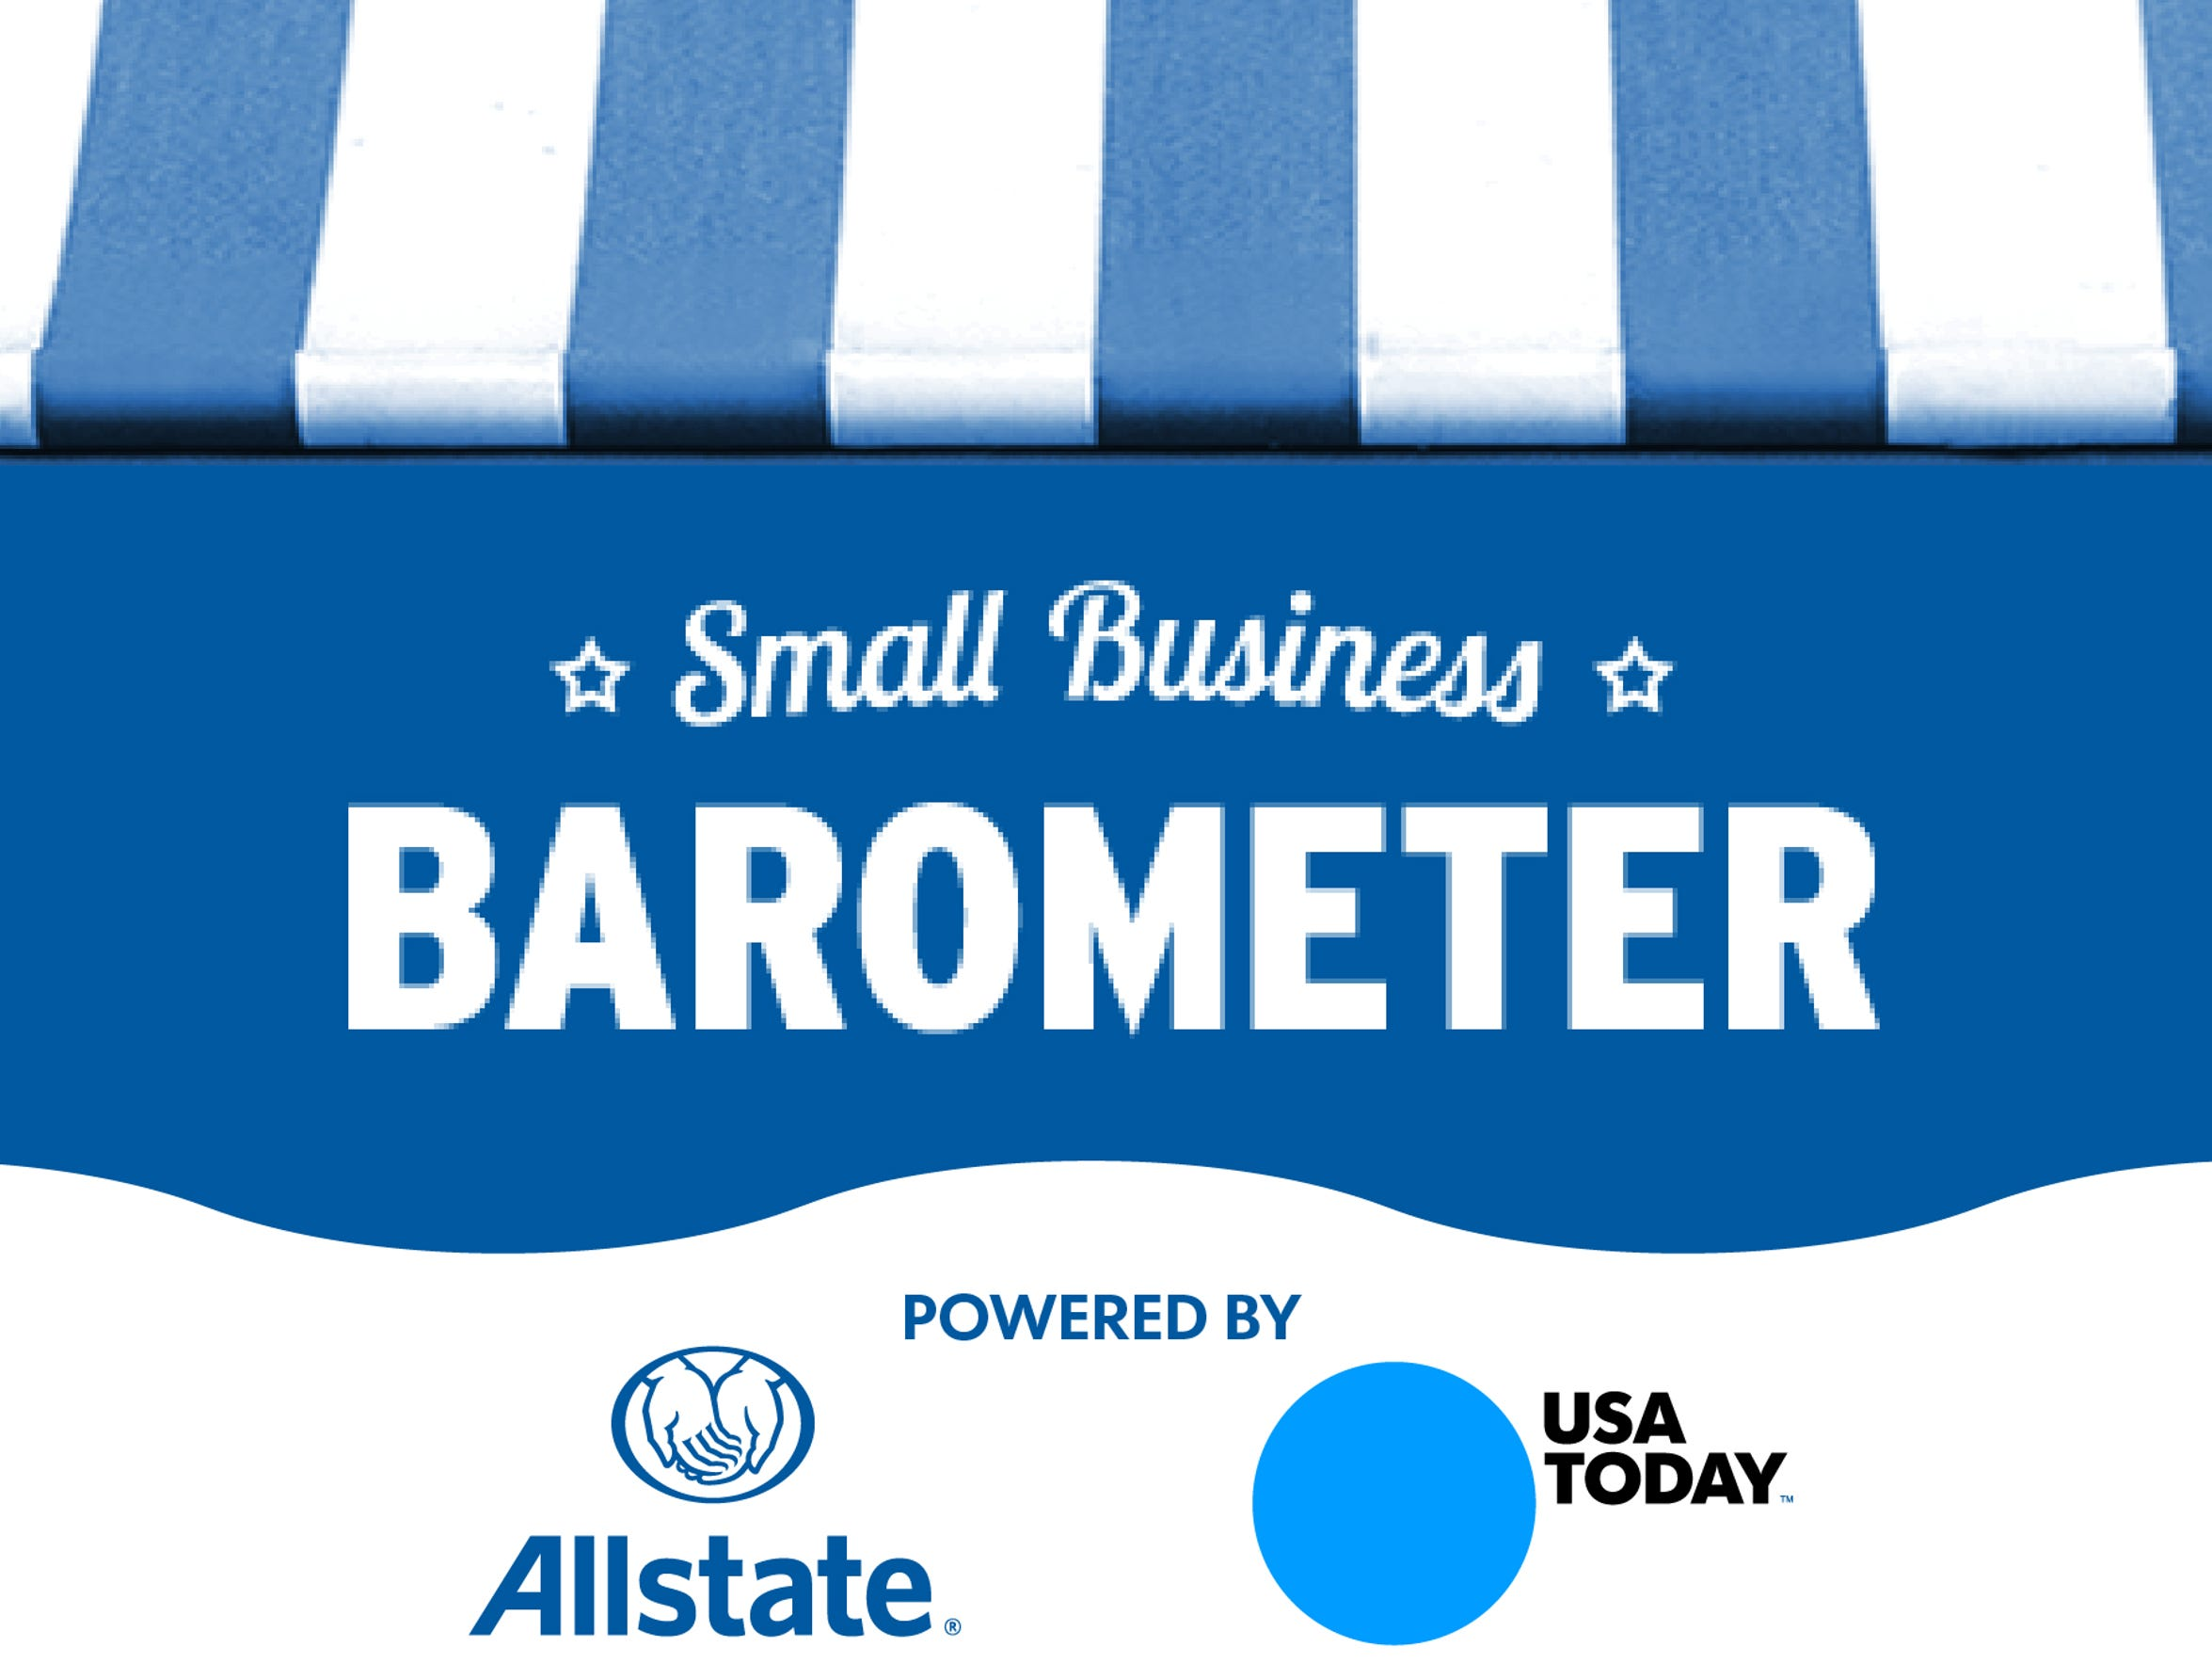 The Allstate/USA TODAY Small Business Barometer